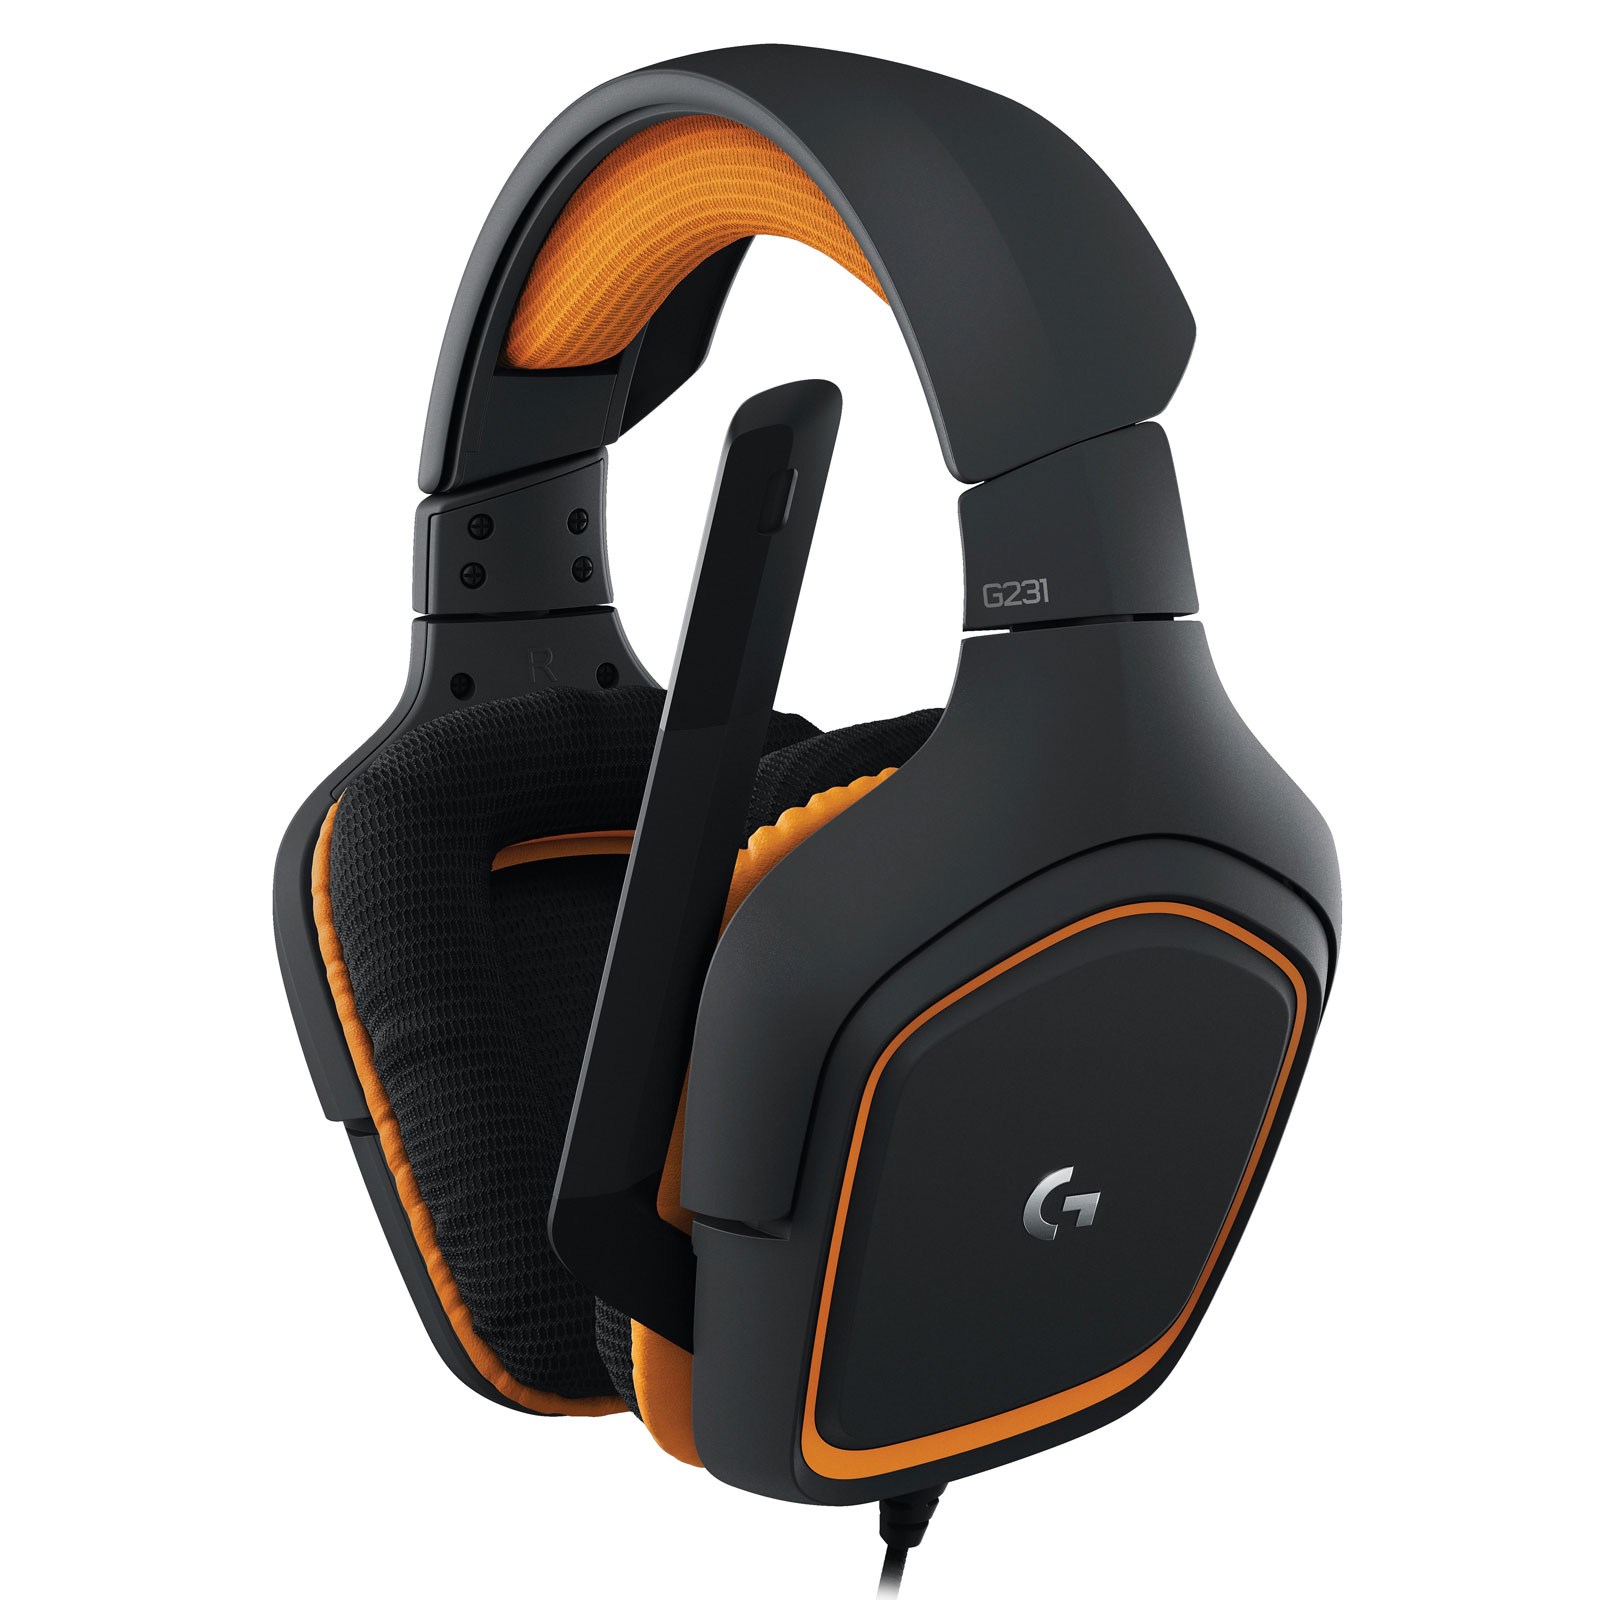 Micro-casque Logitech G231 Prodigy Gaming Headset Casque-micro circum-aural fermé pour gamer (compatible PC, PlayStation 4 et Xbox One)